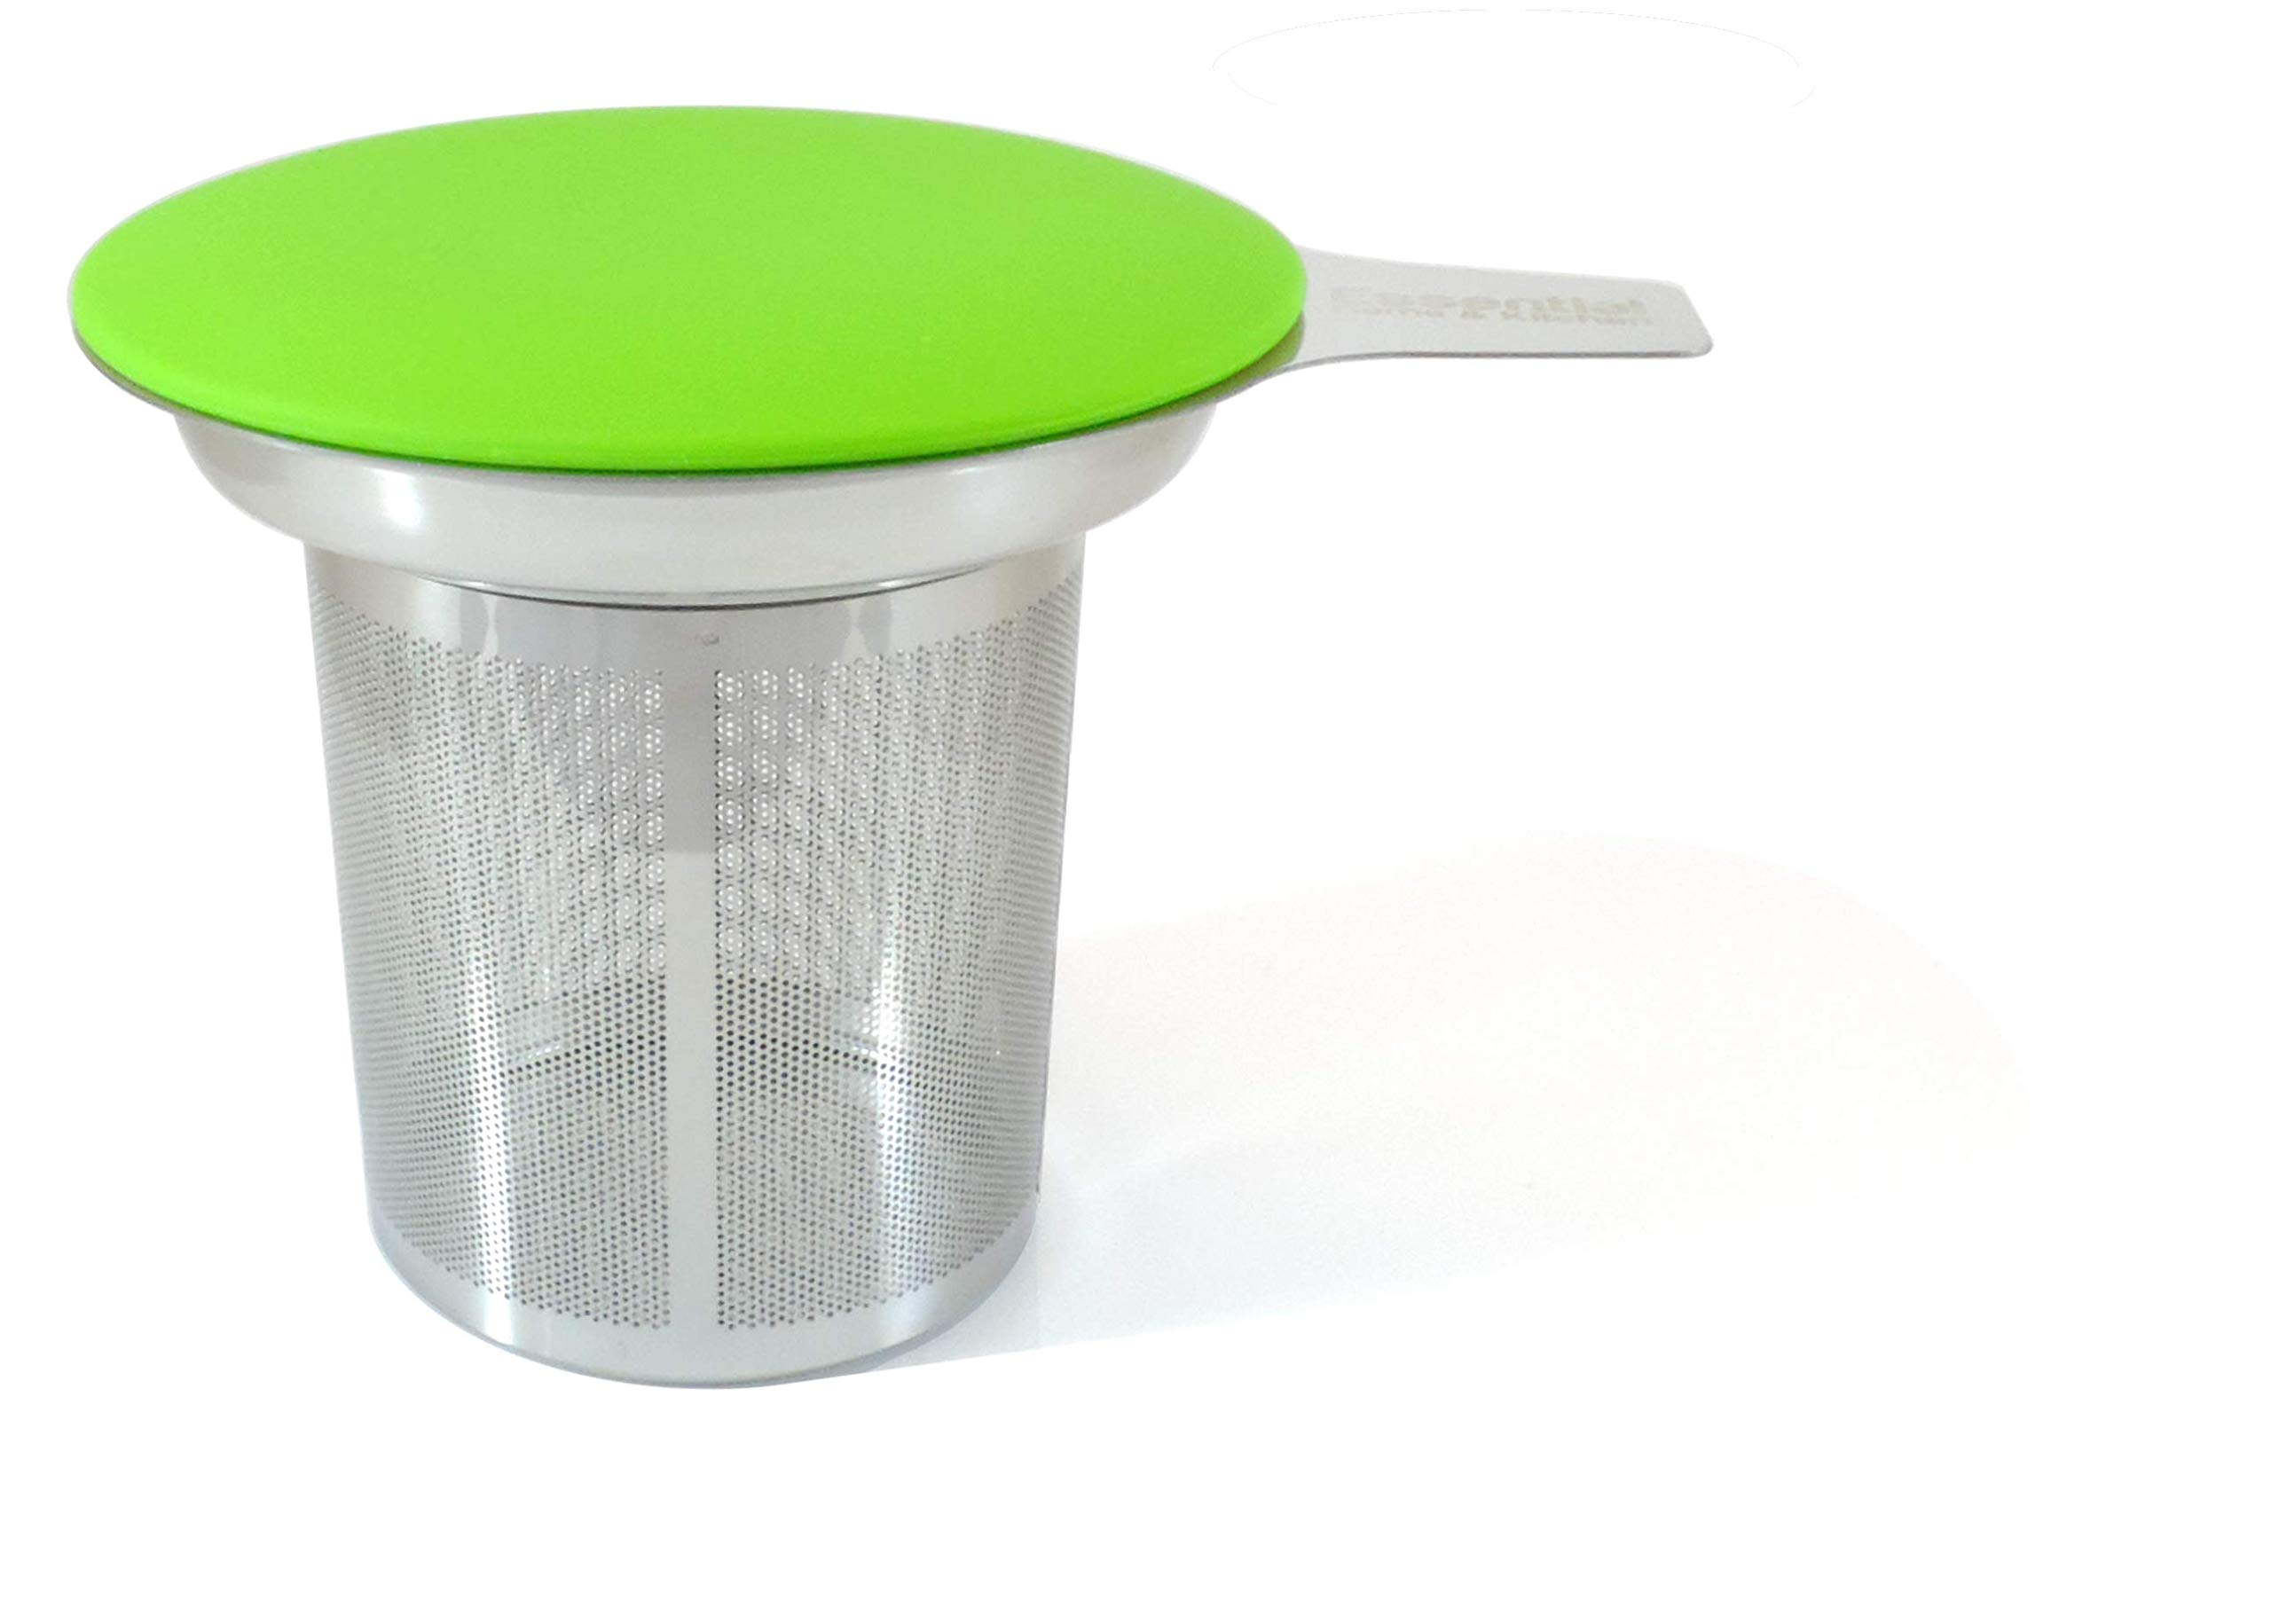 Best Loose Leaf Tea Infuser & Herbal Tea Steeper - Brews, Strains & Steeps Single Cup of Extra Fine Tea - Dishwasher Safe Silicone Top and Stainless Steel Tea Tumbler Basket & Infuser by Essential Home & Kitchen (Image #1)